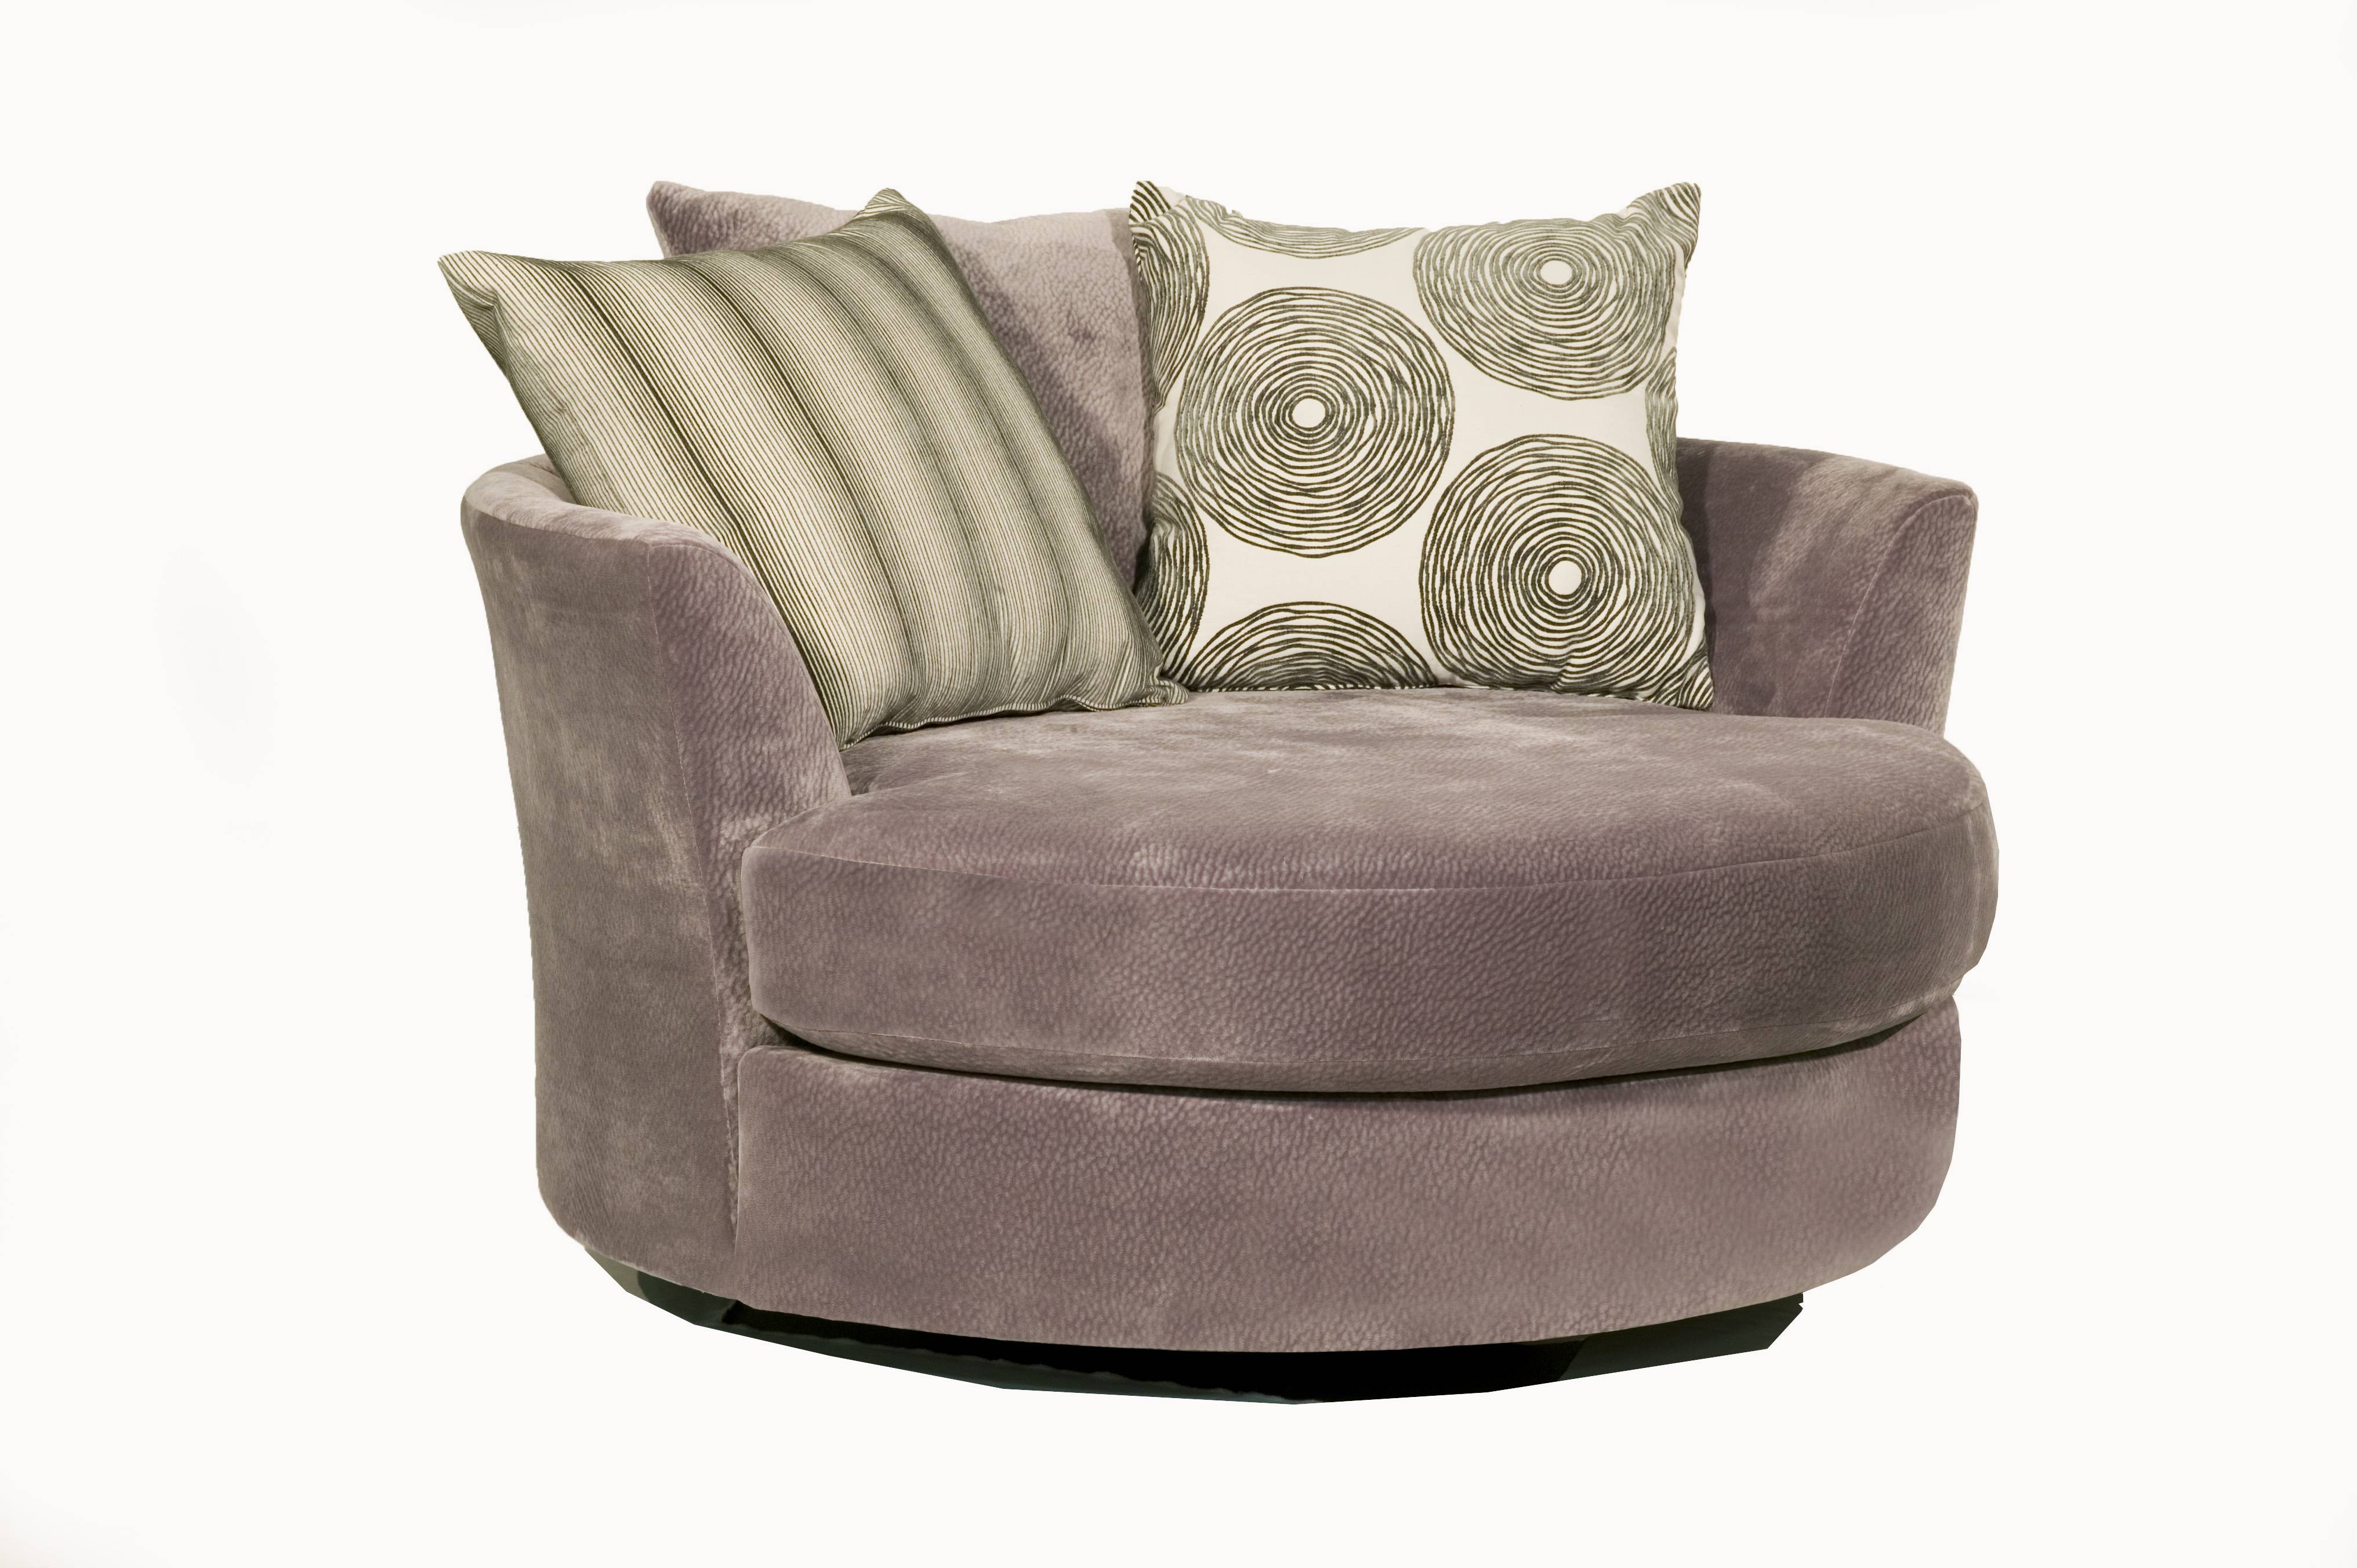 Sofas Center : Best Roundfa Ideas On Pinterest Contemporary throughout Round Sofa Chair (Image 24 of 30)